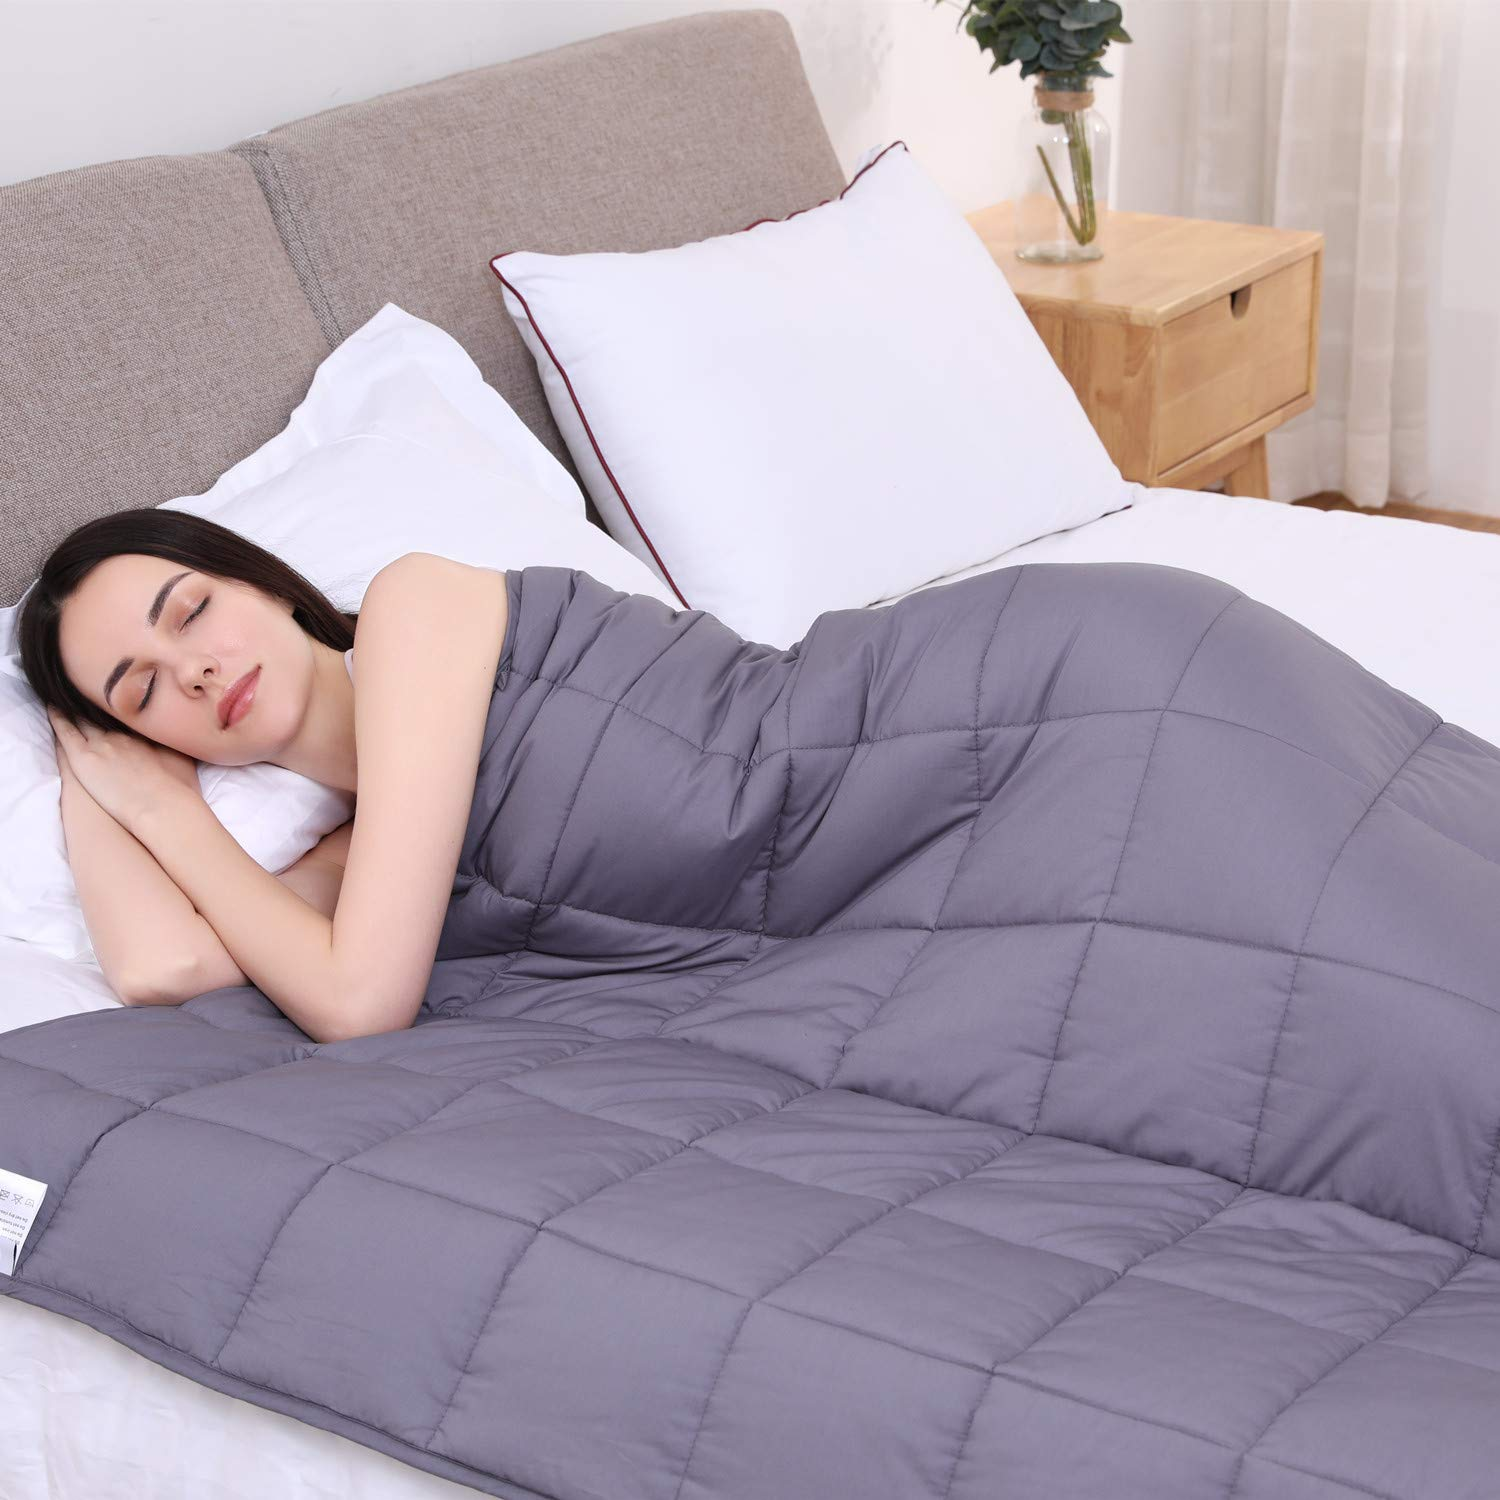 A woman sleeping with a weighted blanket.